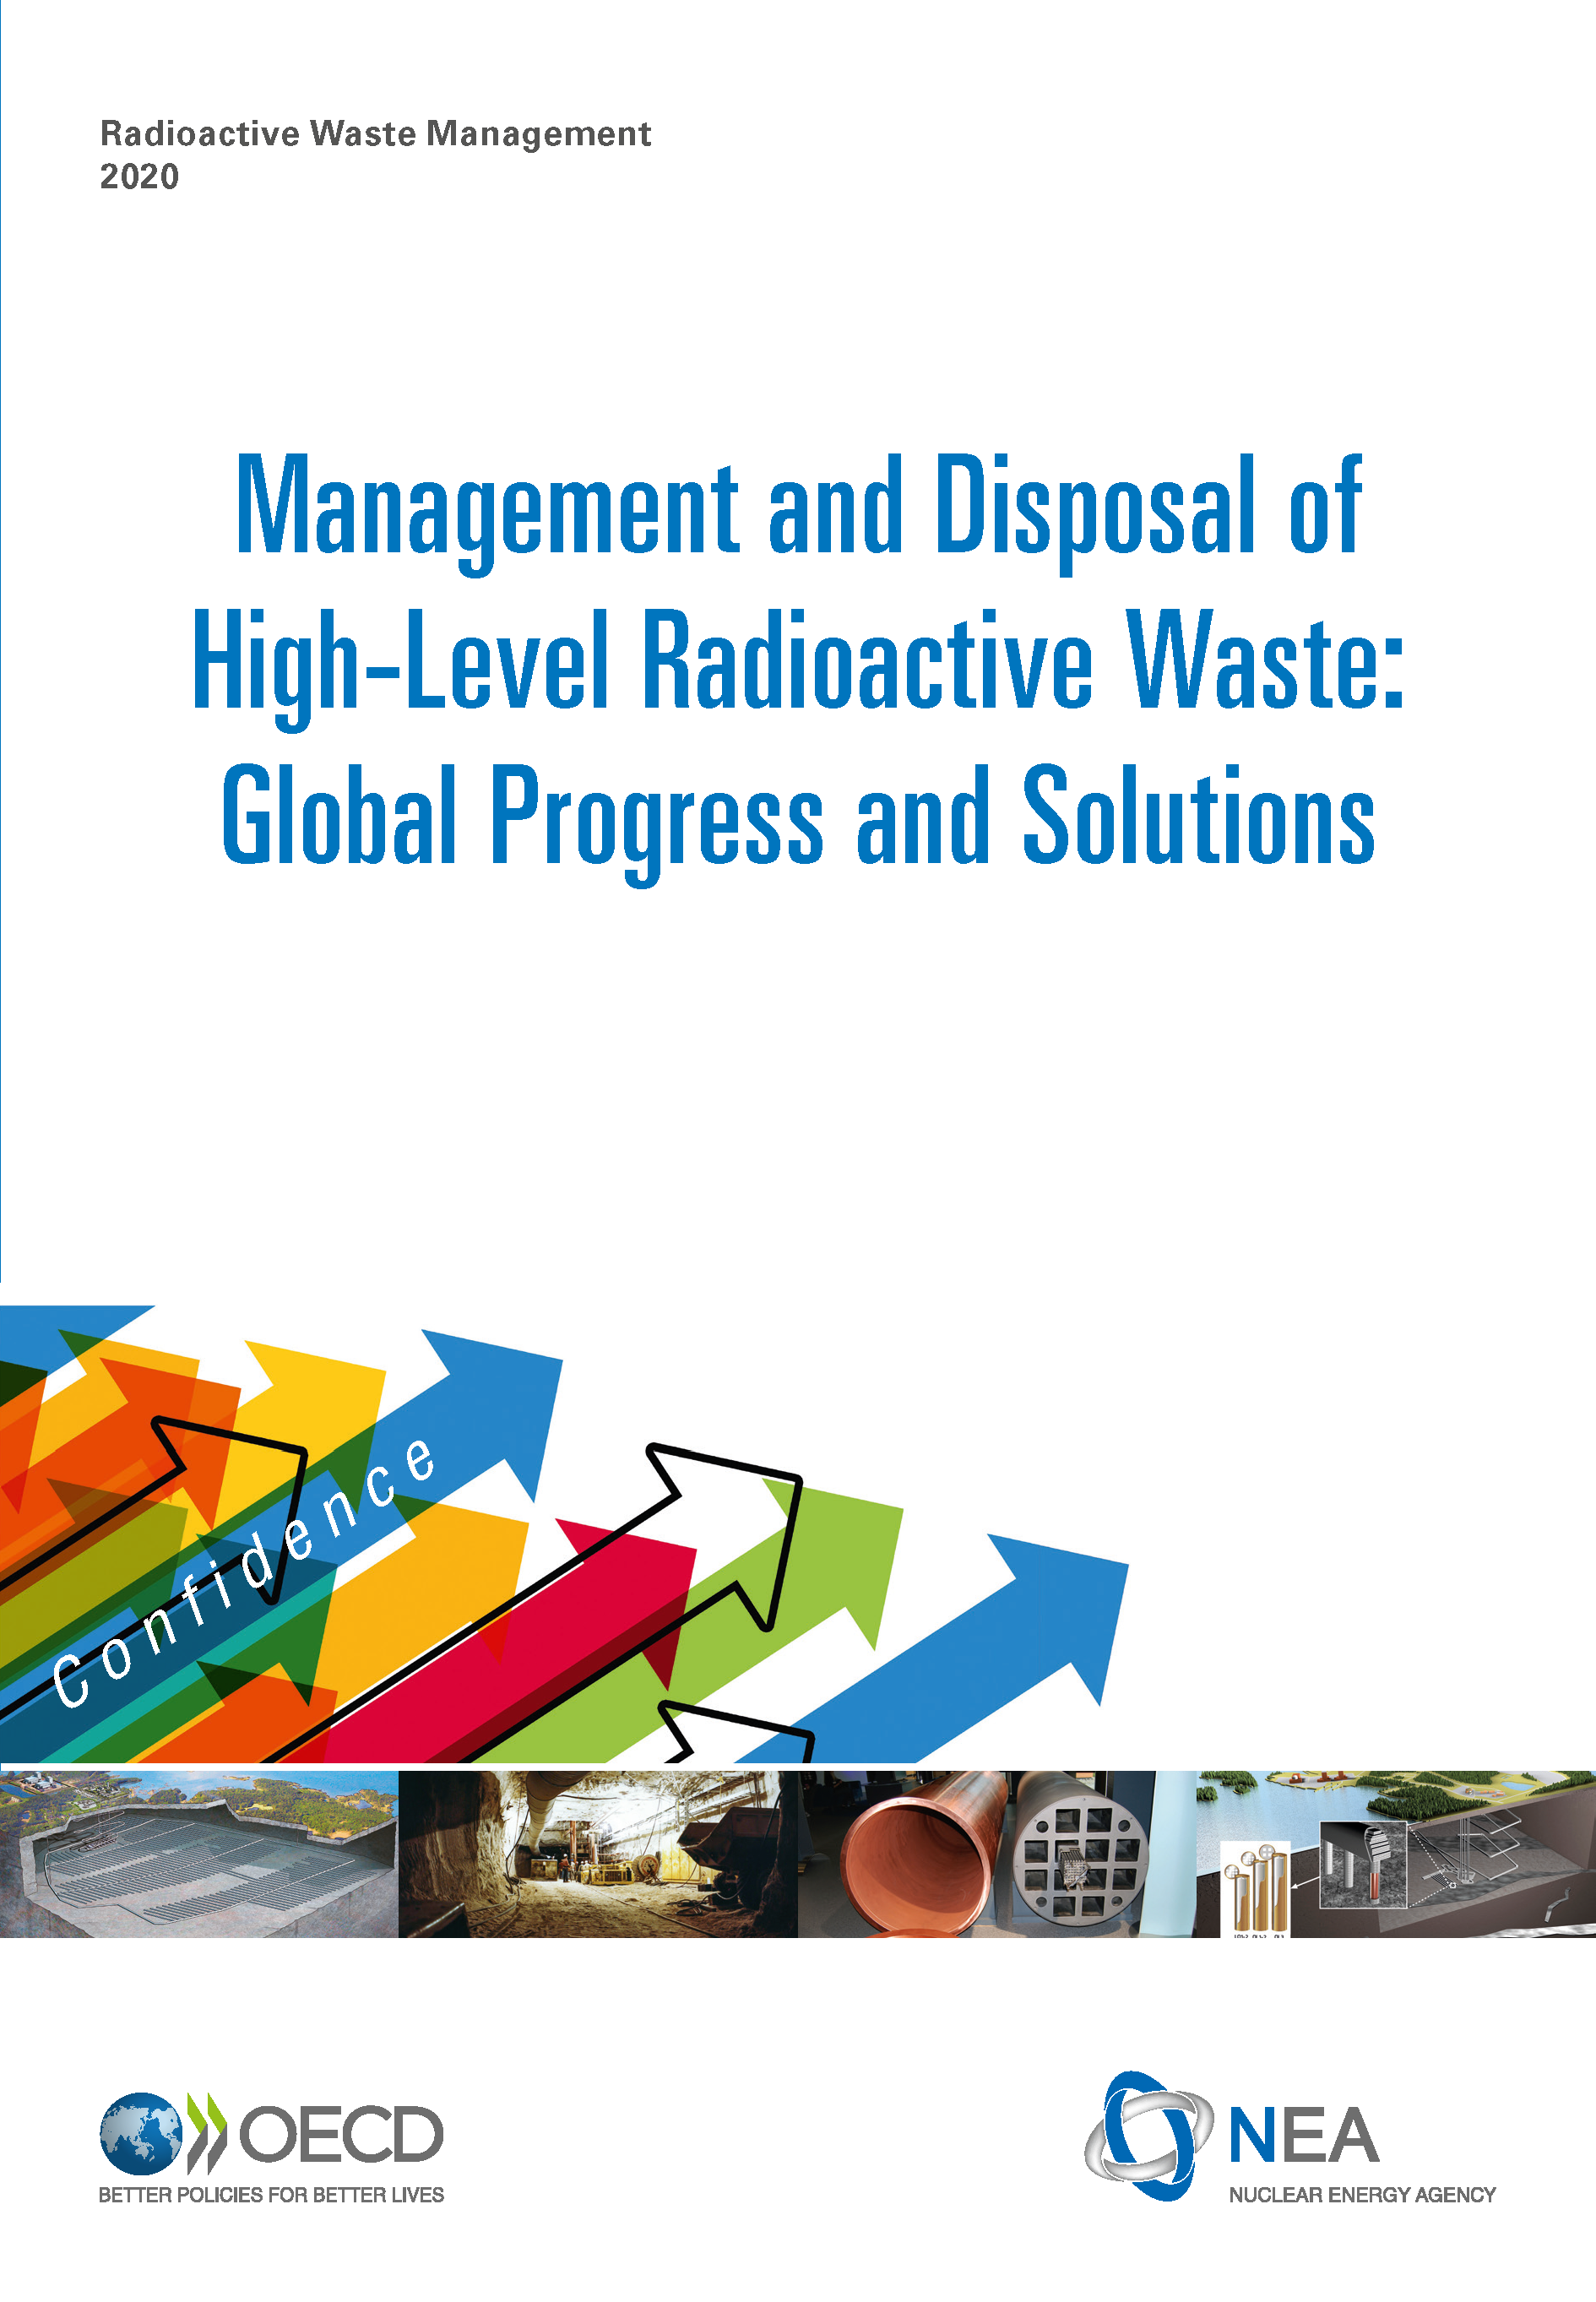 Management and Disposal of High-Level Radioactive Waste: Global Progress and Solutions